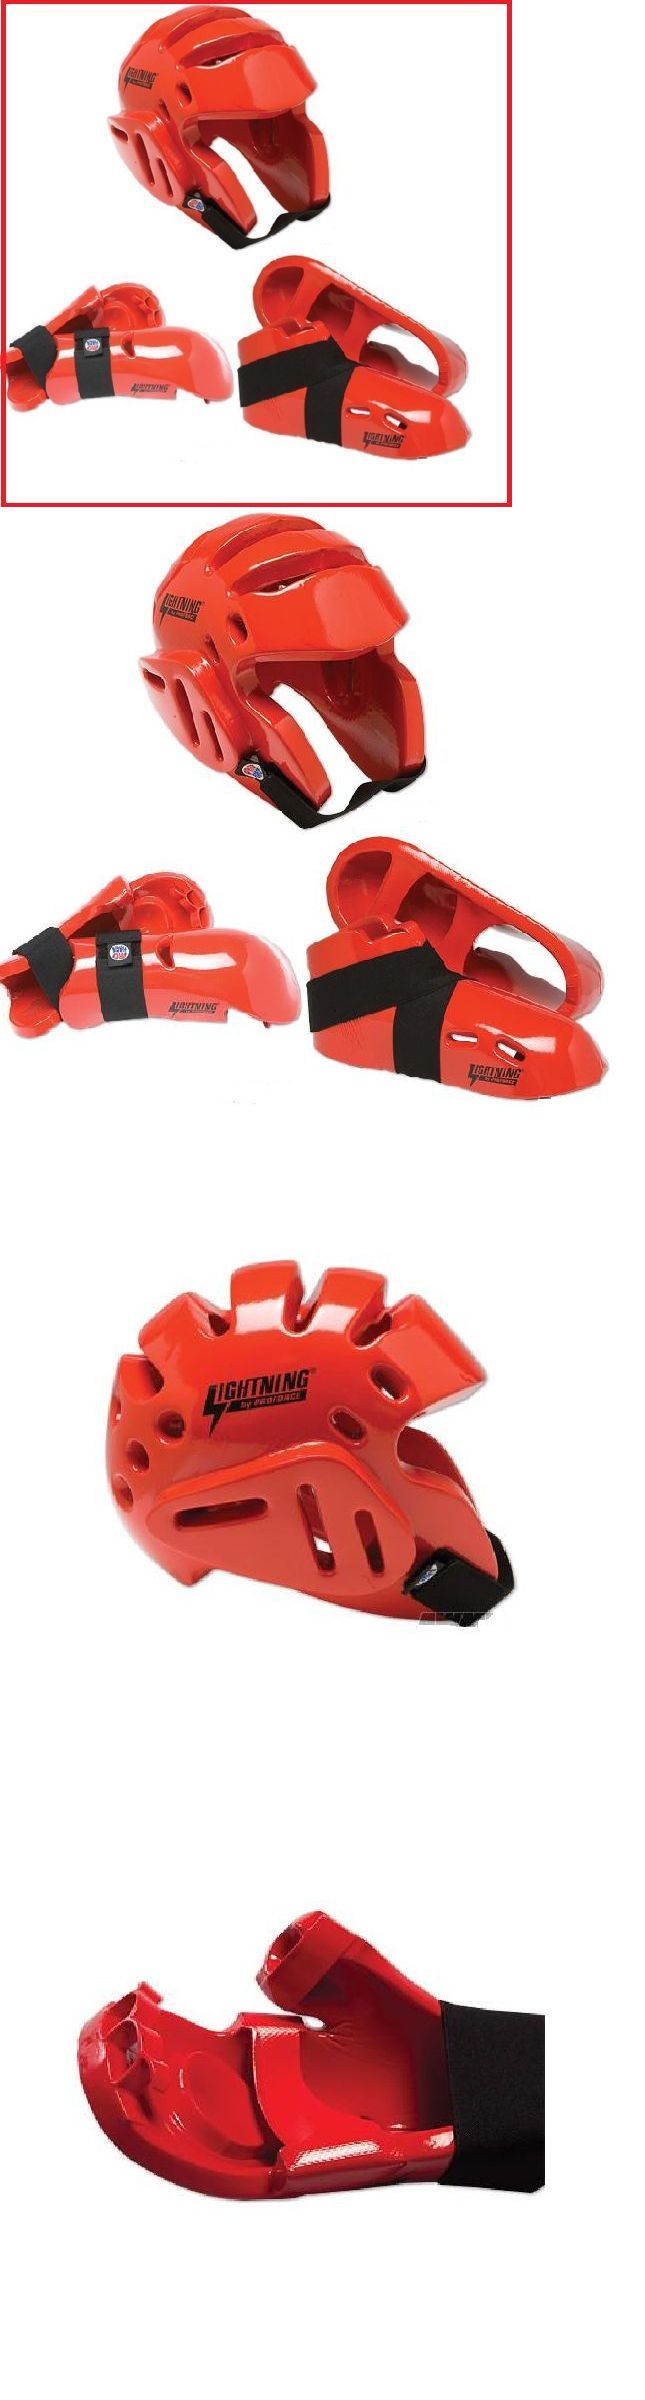 Other Combat Sport Protection 179783: Proforce Sparring Gear Set Guards Karate Tkd Pads Head Helmet Hand Foot Red Mma BUY IT NOW ONLY: $64.5